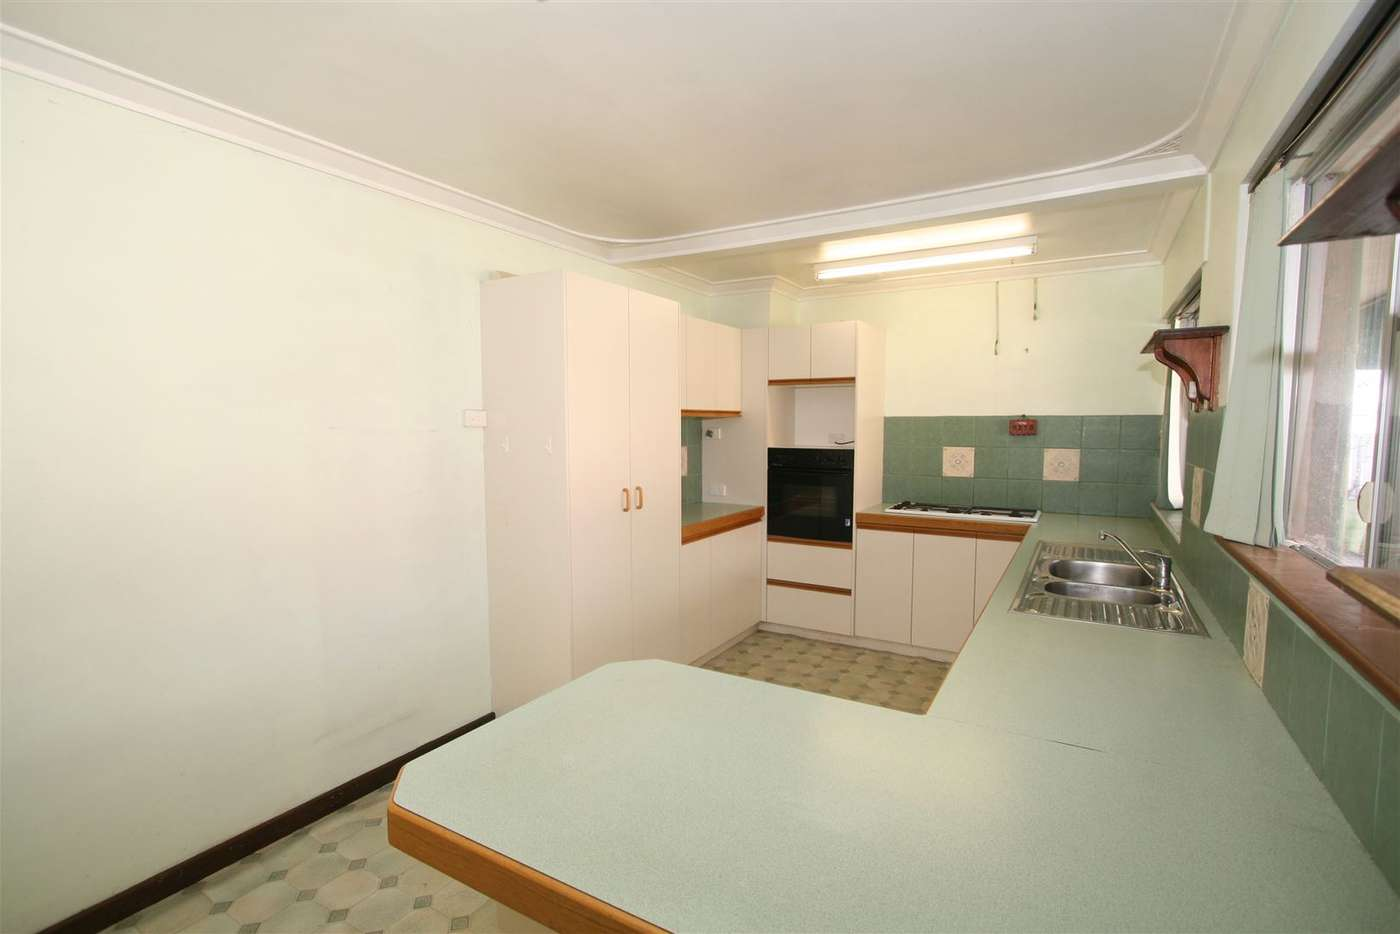 Seventh view of Homely house listing, 11 Coral Road, Safety Bay WA 6169